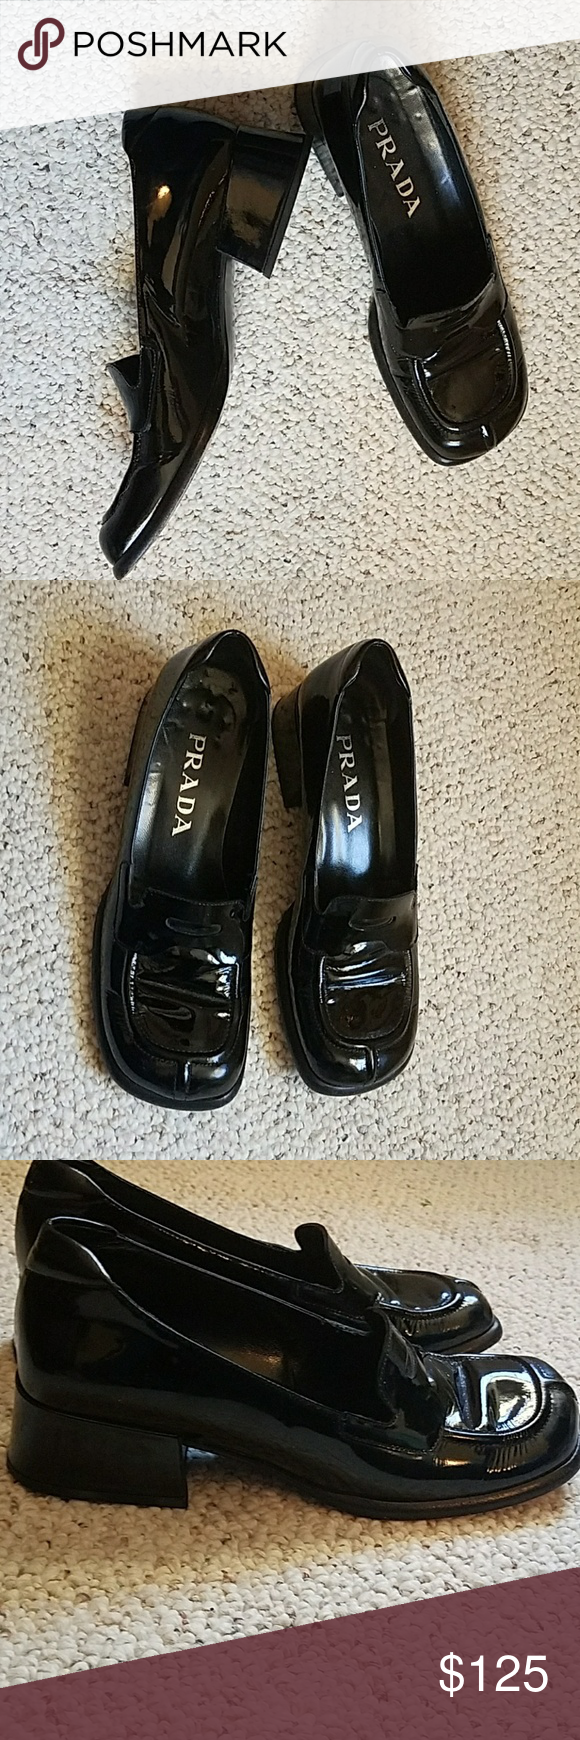 prada shoes europeans wear